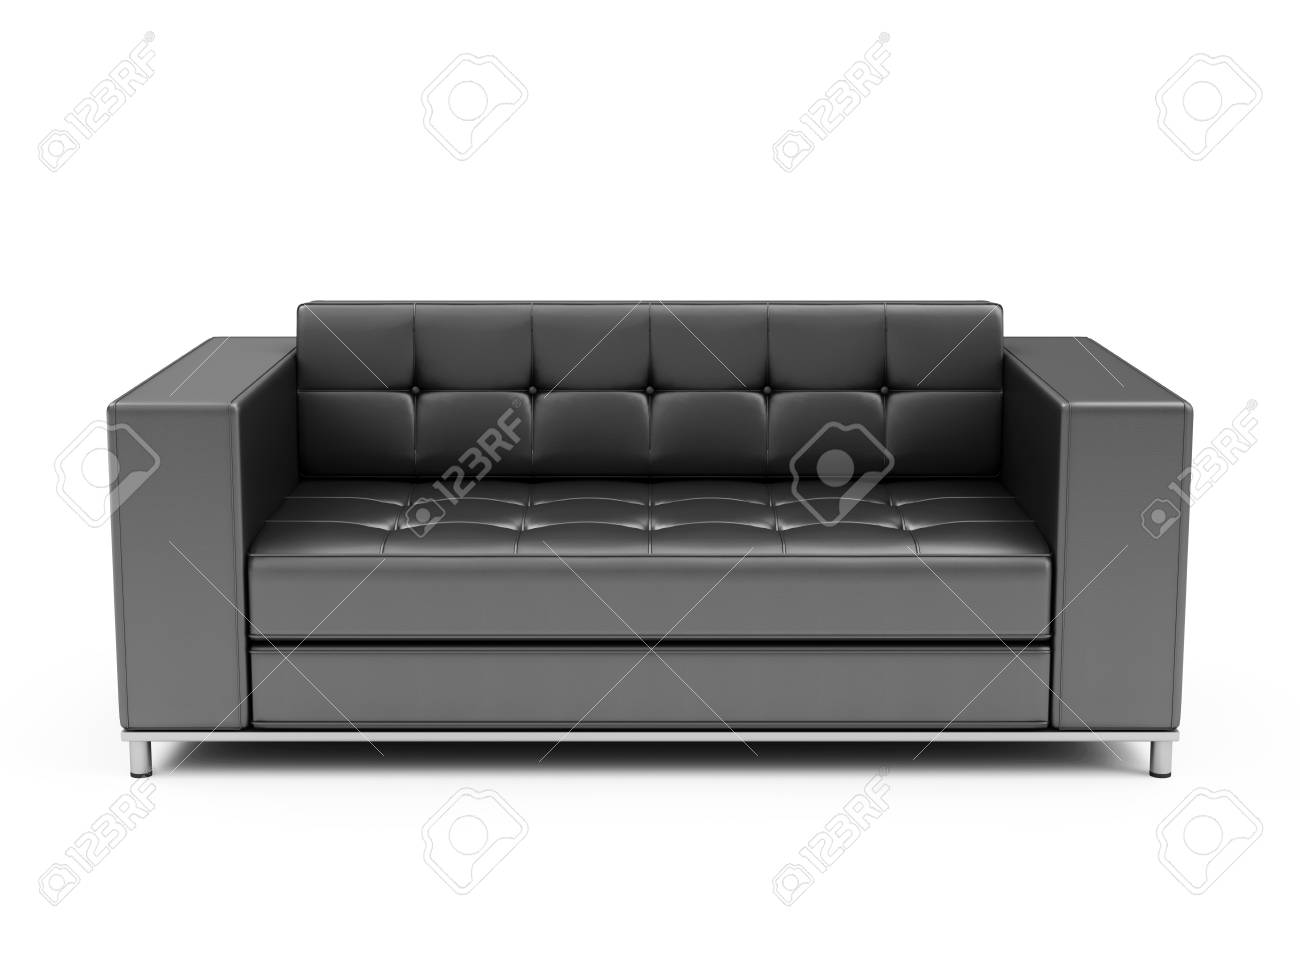 Modern Black Leather Sofa isolated on white background. 3D Rendering